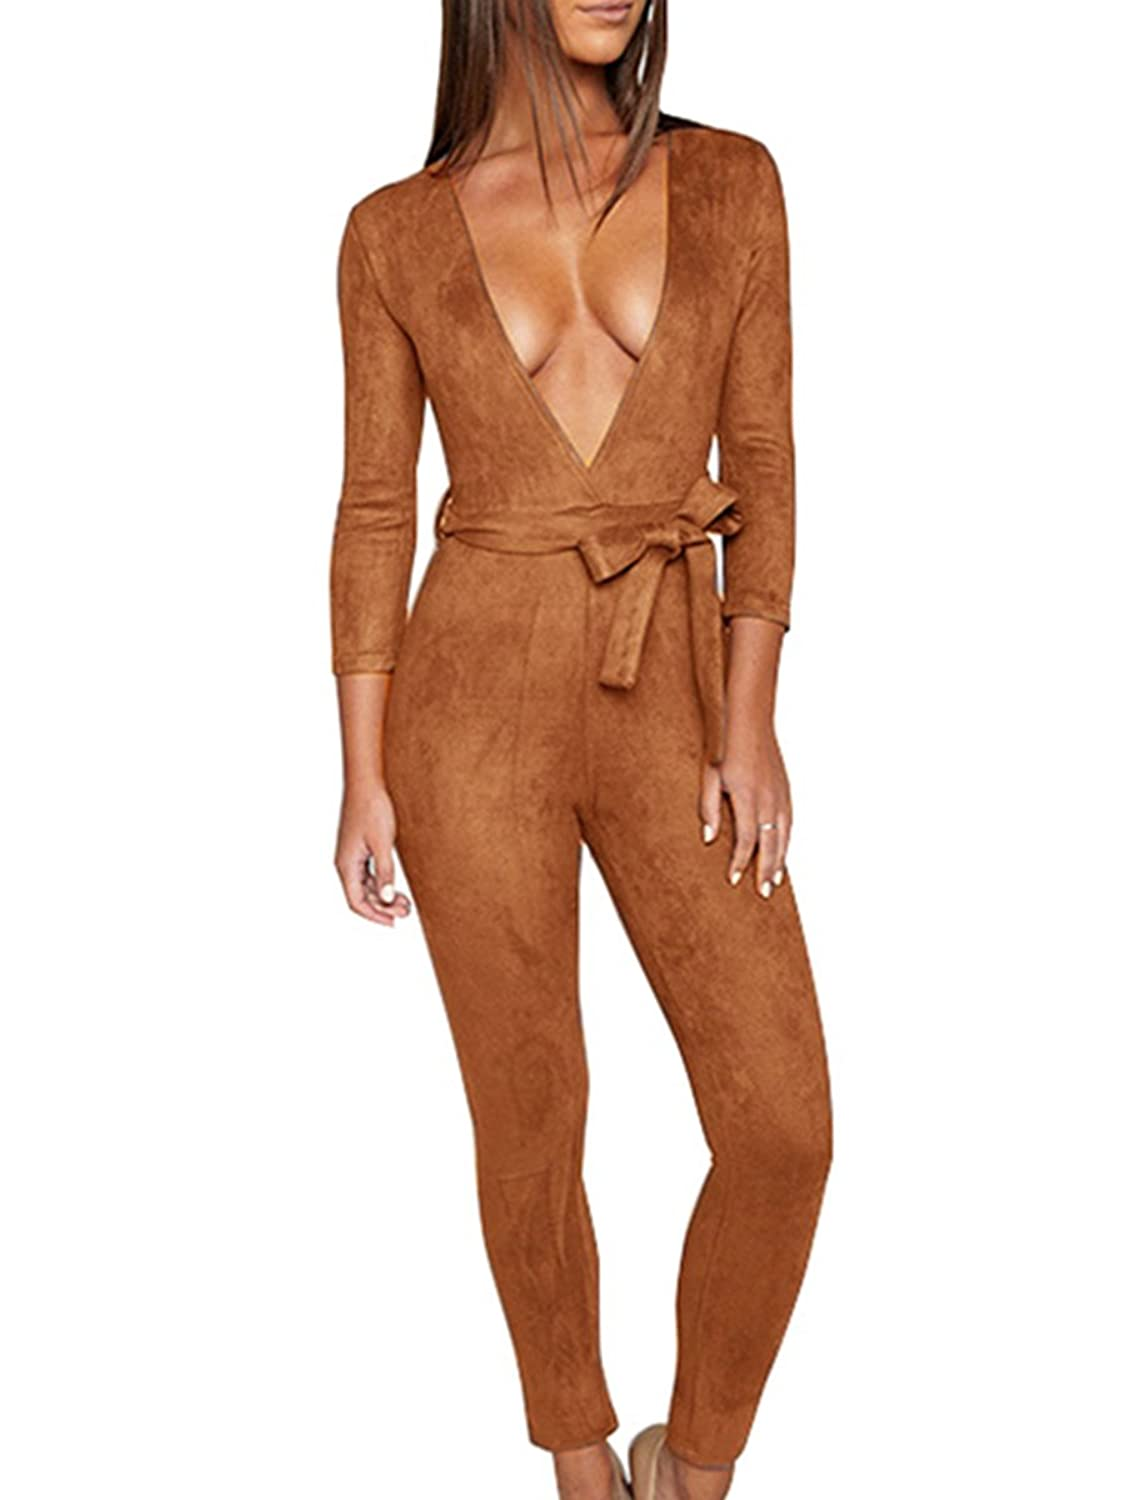 Glamaker Women's Sexy Deep V Neck Long Sleeves Suede Jumpsuit Pants Rompers with Belt